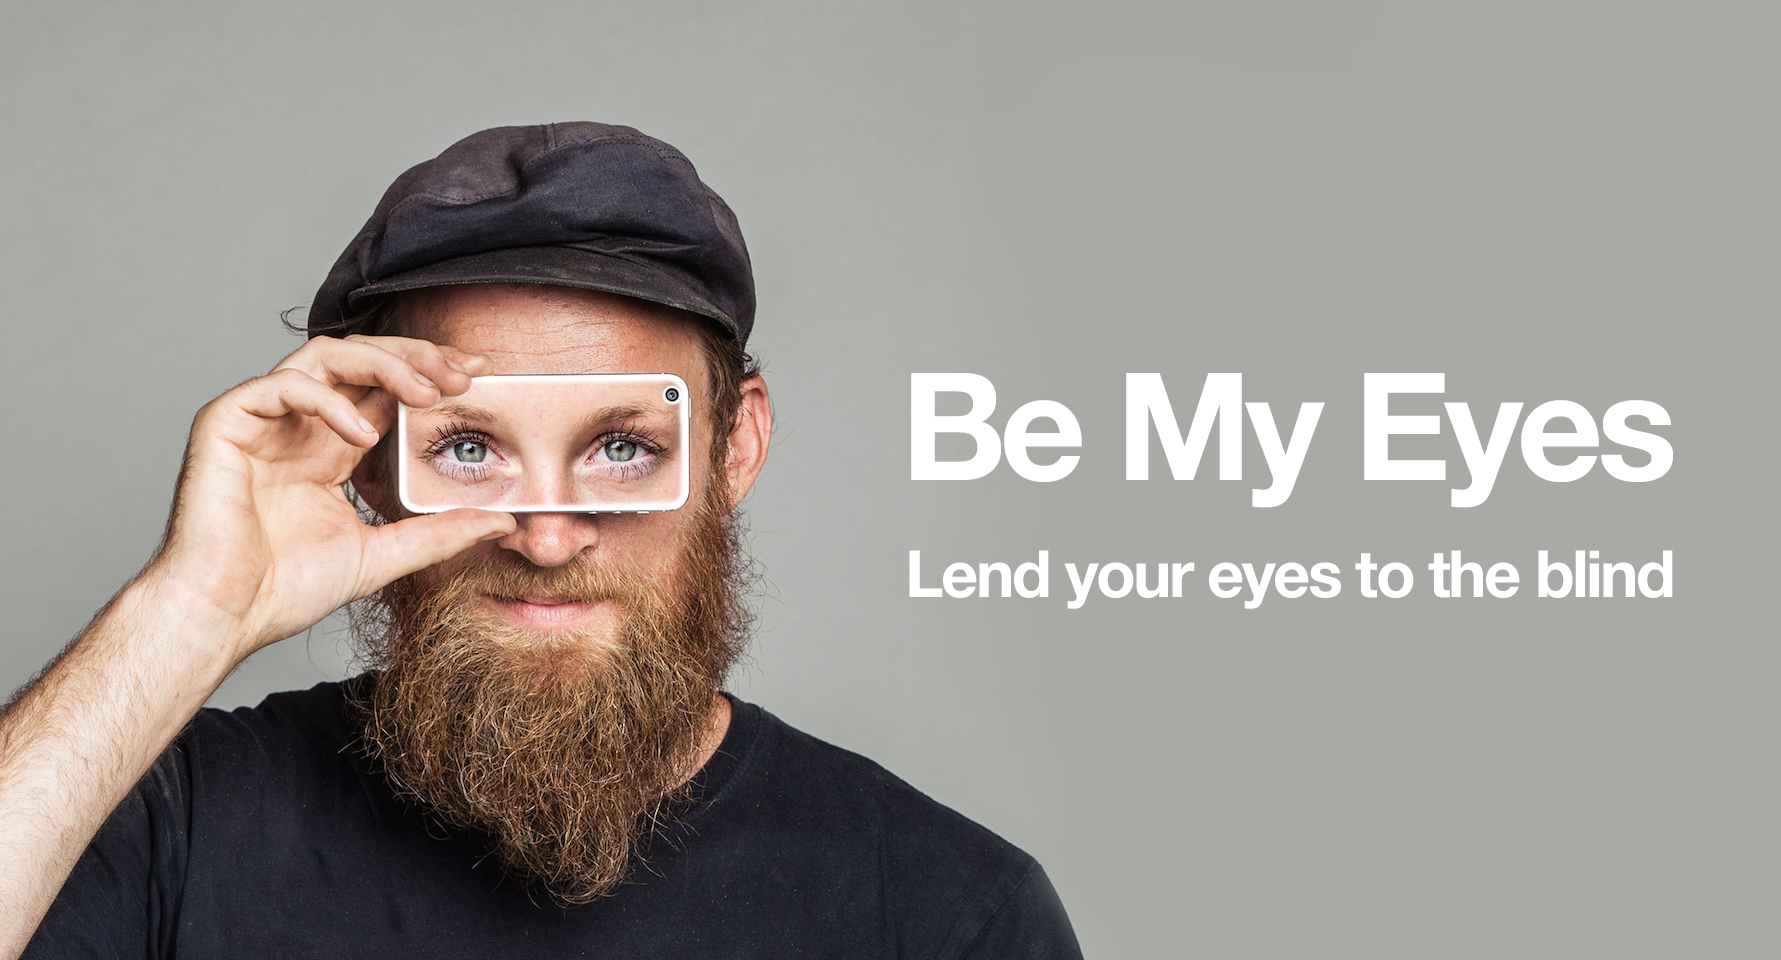 It pays to be socially responsible: introducing Zendesk's new startup initiative